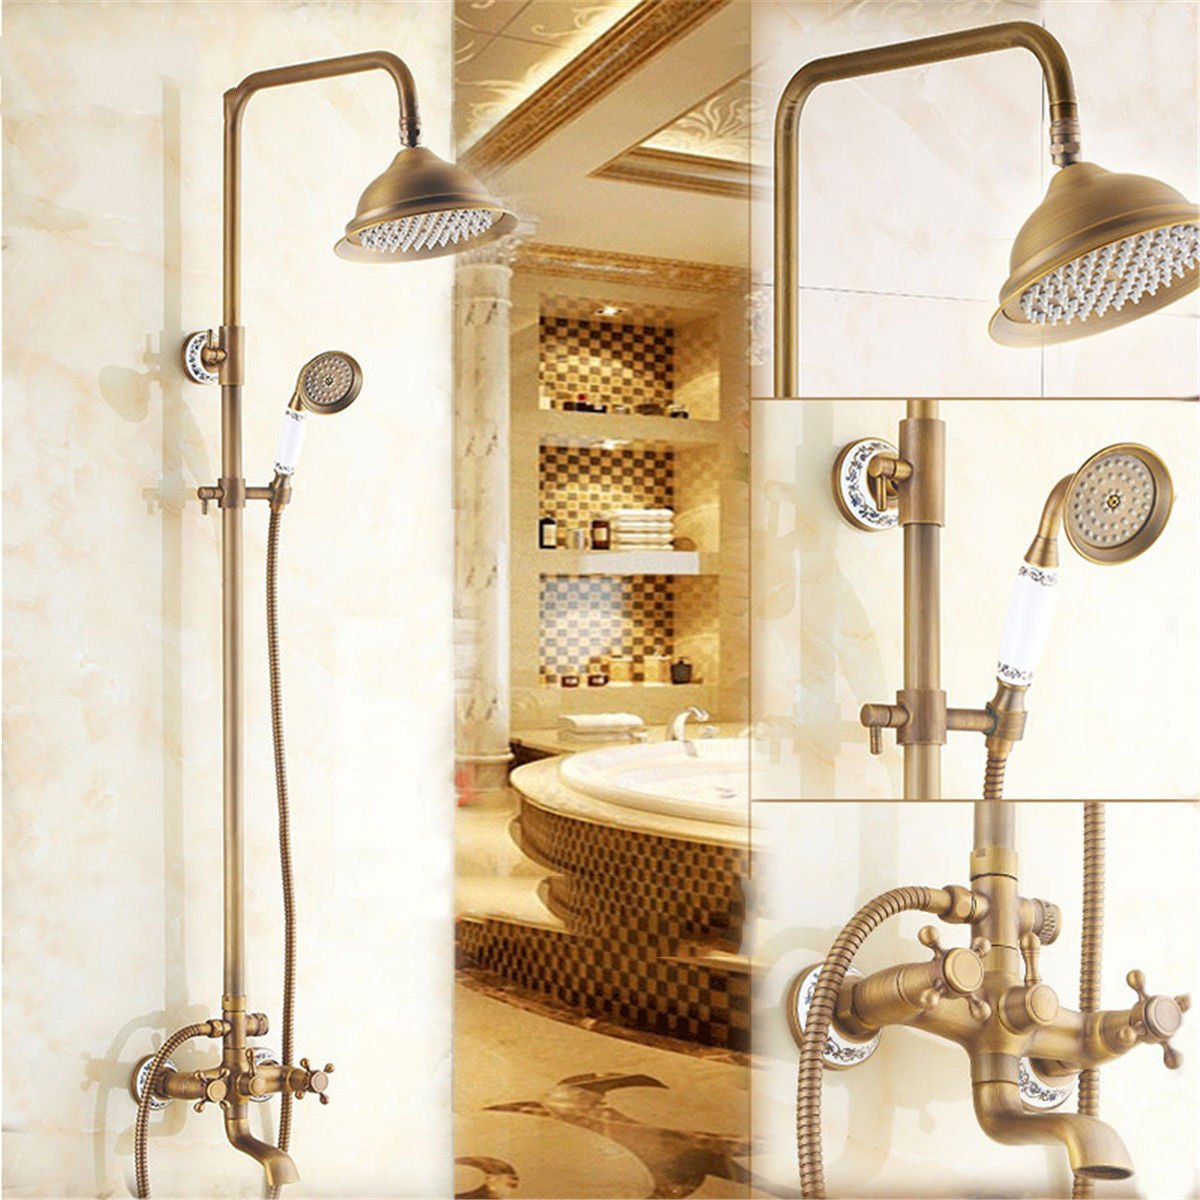 ETERNAL QUALITY Bathroom Sink Basin Tap Brass Mixer Tap Washroom Mixer Faucet All copper retro shower set solid brass antique shower with hot & cold water lift bluee-tiled